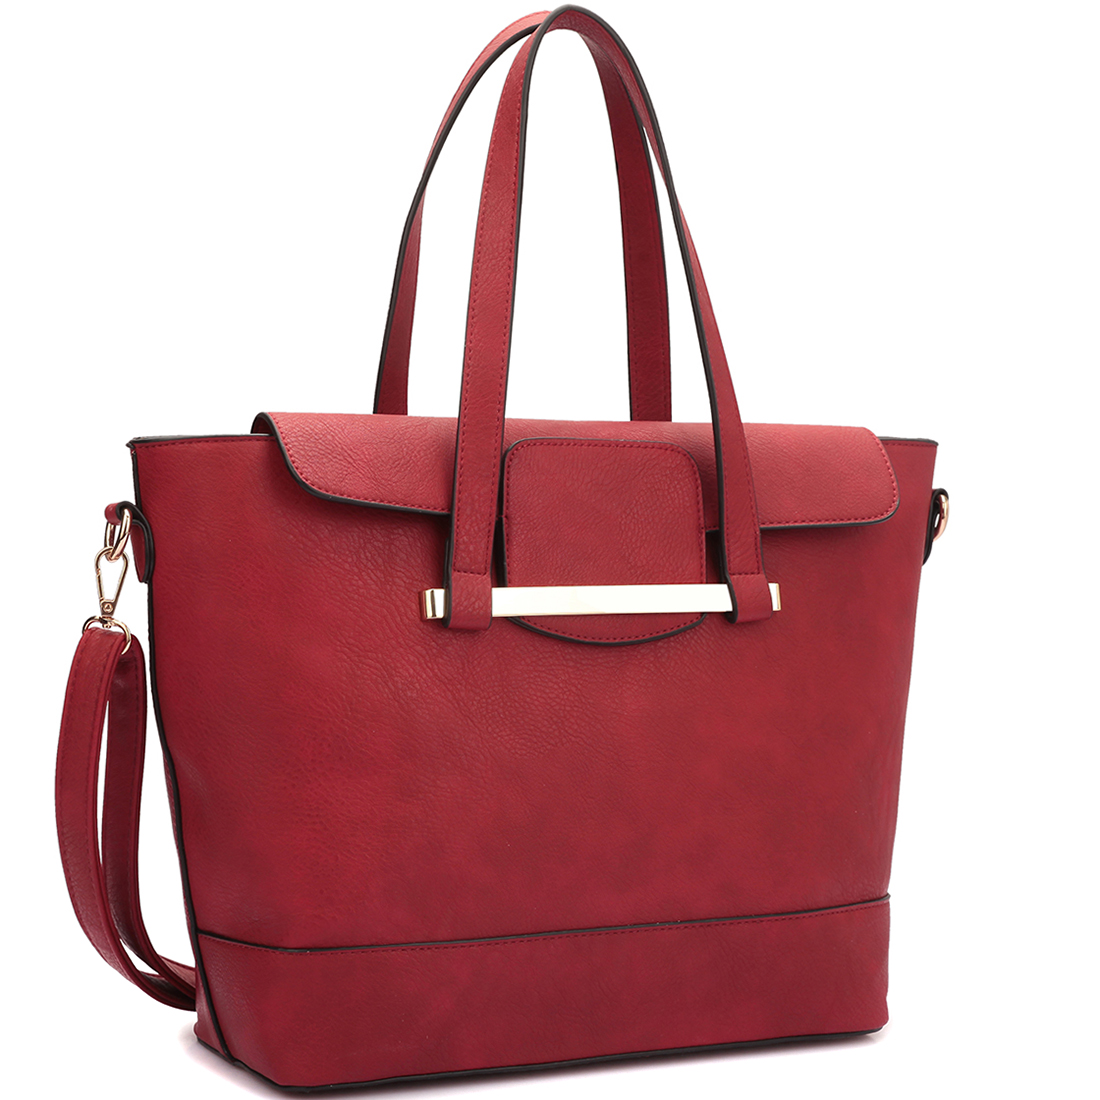 Dasein® 2 in 1 Faux Leather Bag Combination of Mini Satchel and Tote